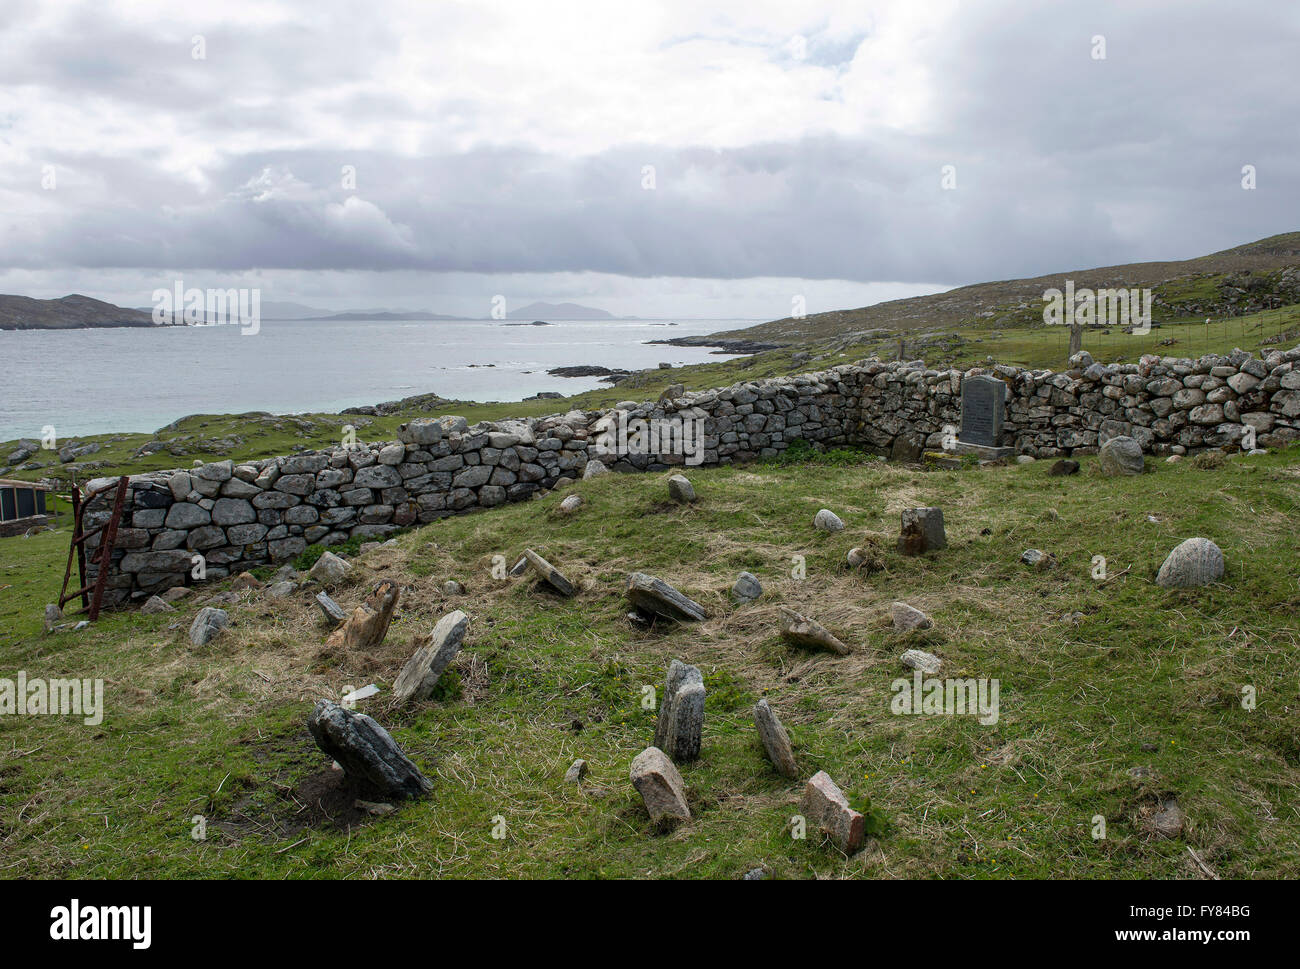 An old cemetery at  Huisinish, Isle of Harris, Outer Hebrides Scotland GB. - Stock Image